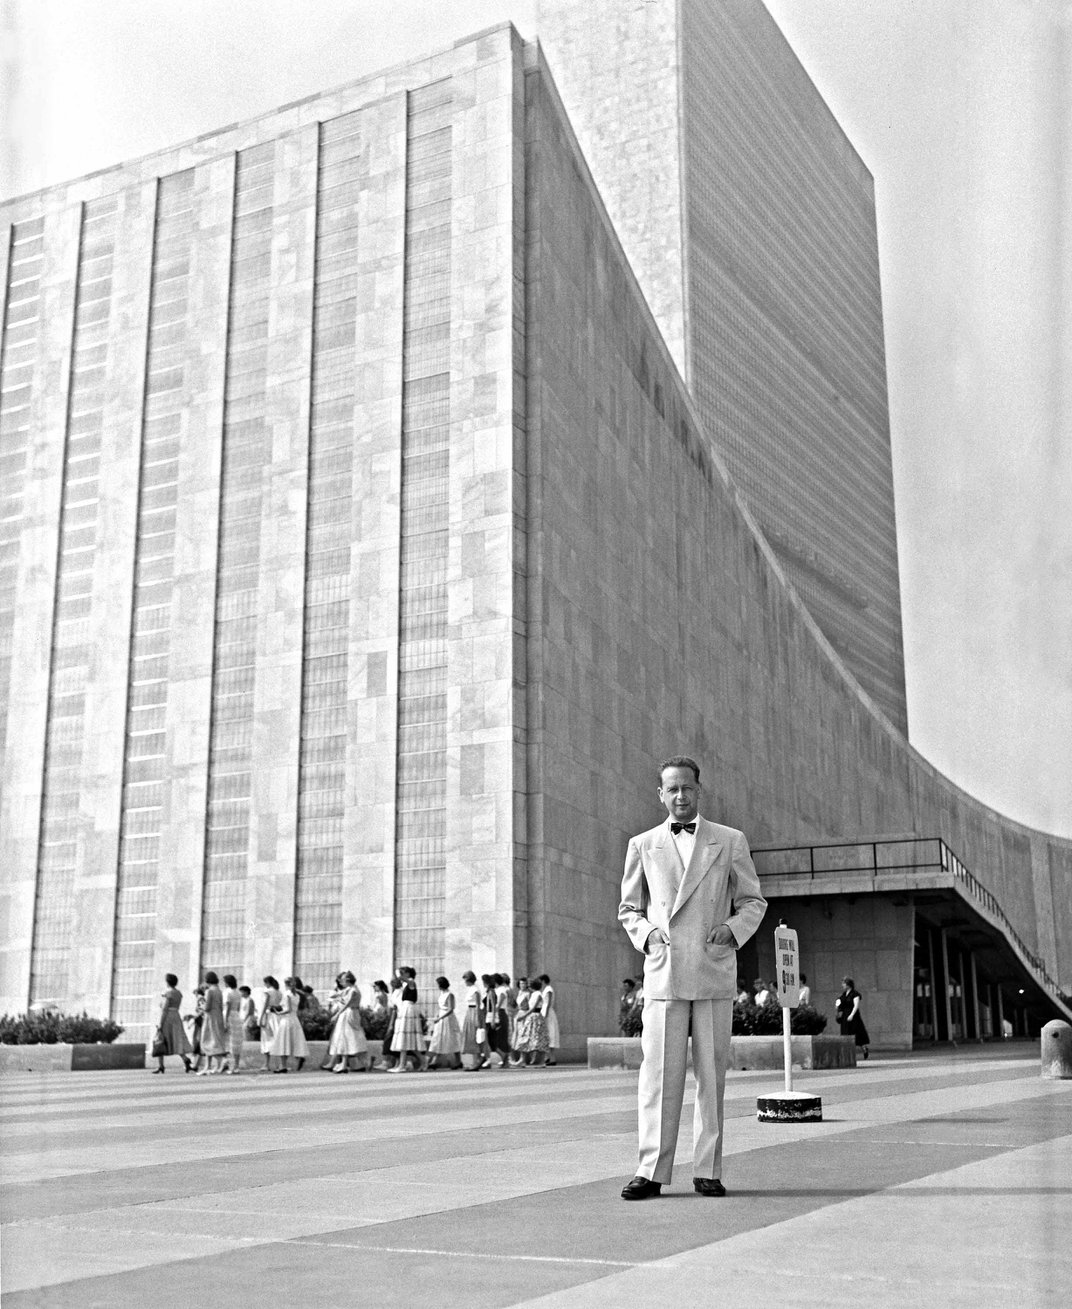 How a Controversial European Architect Shaped New York